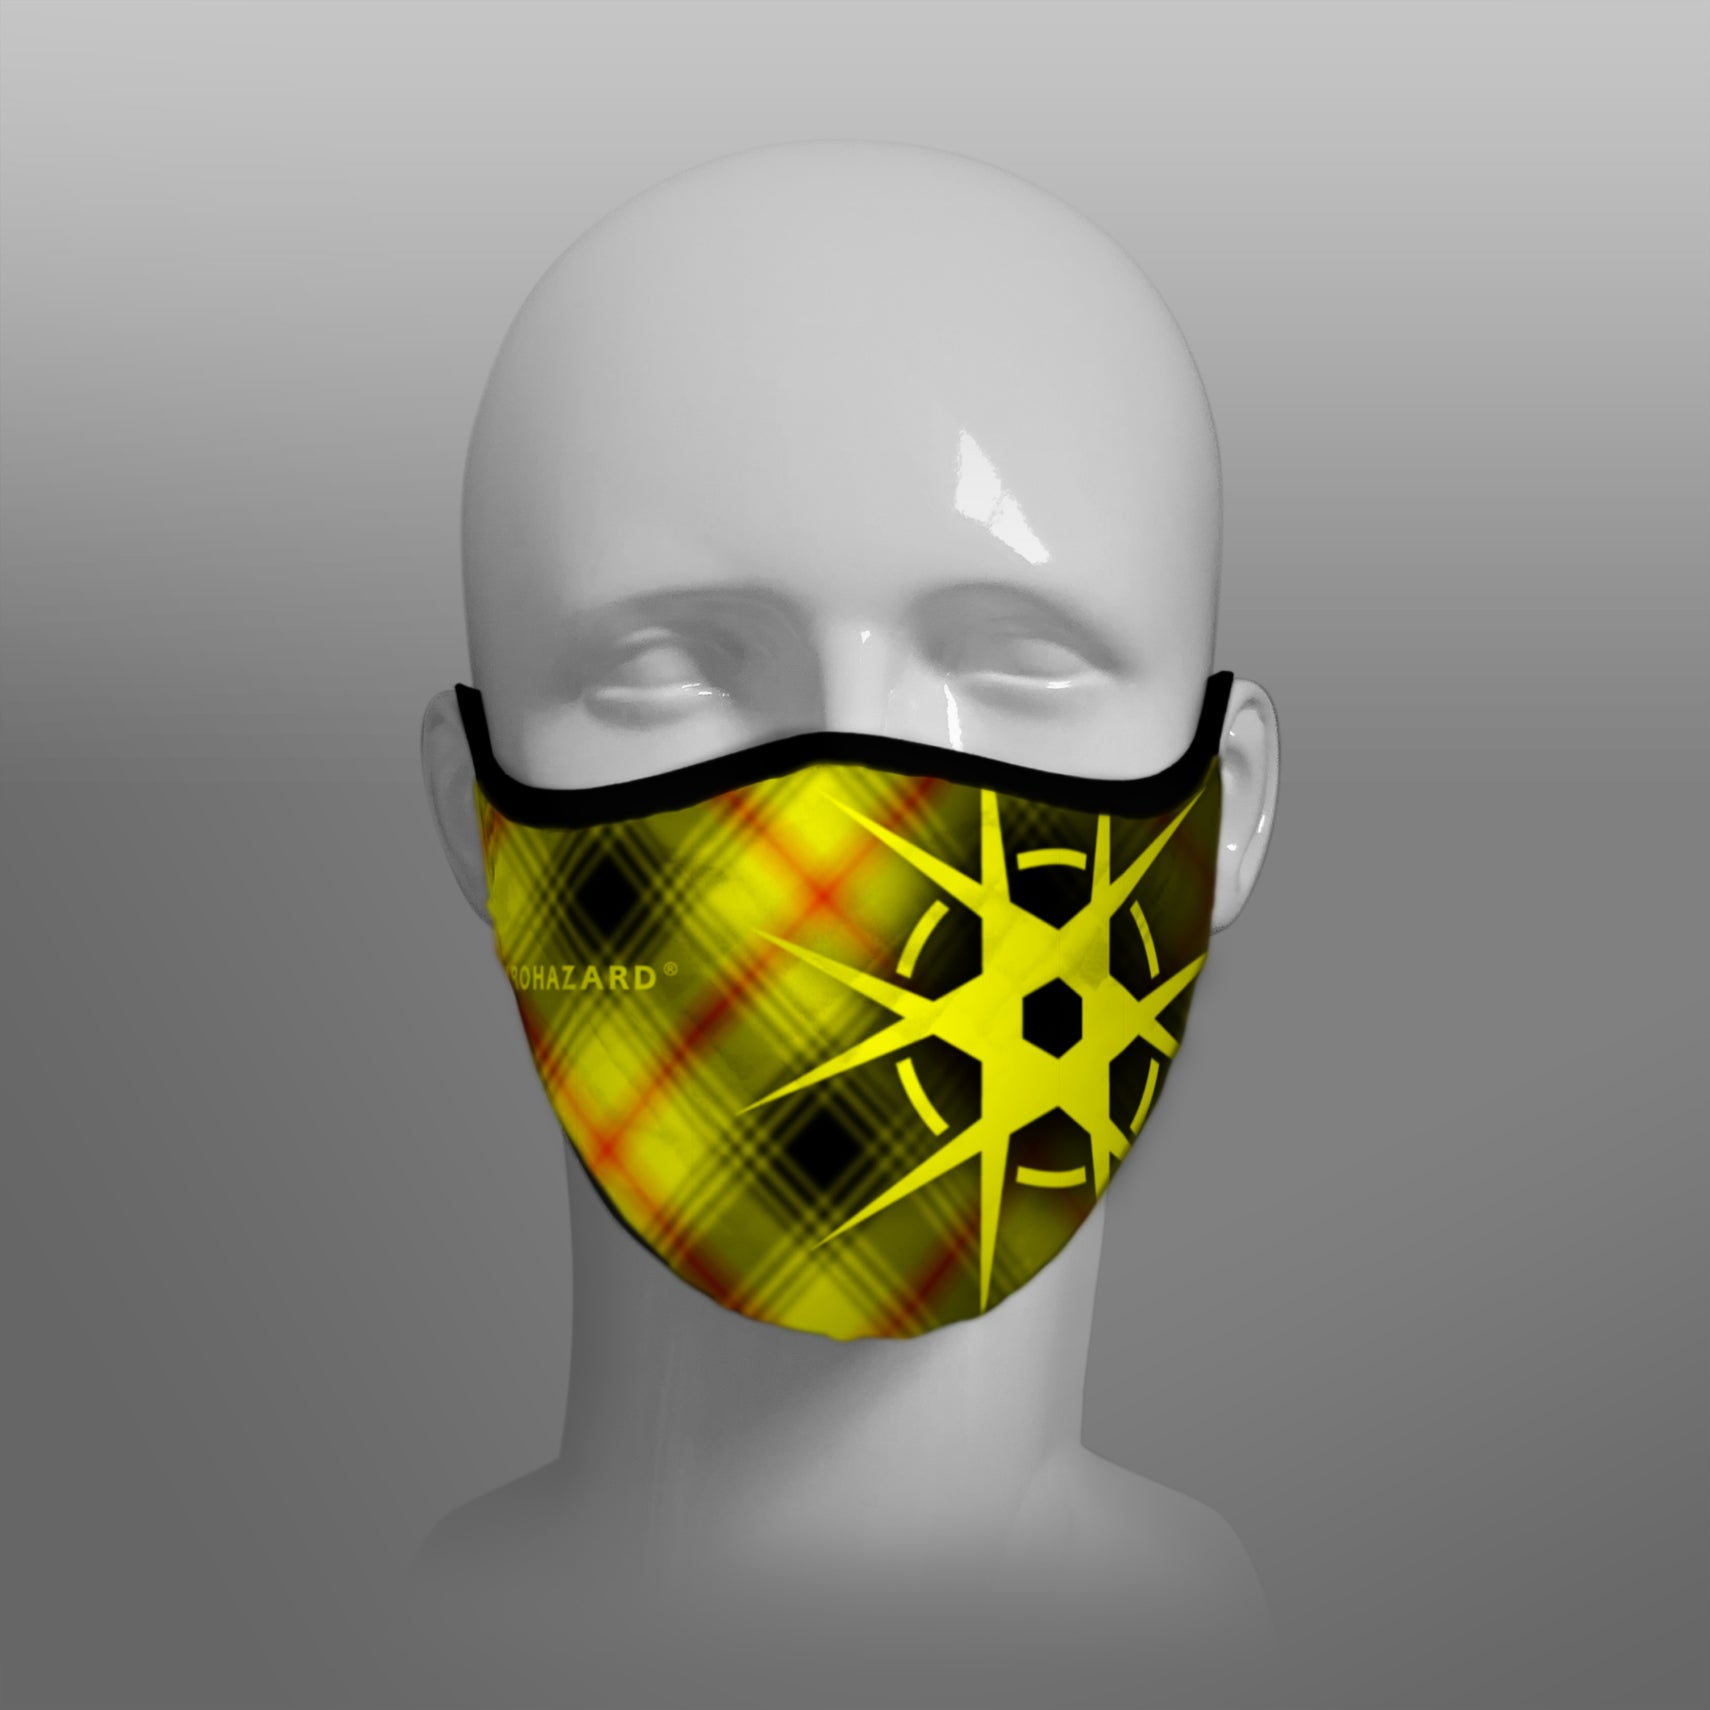 Virohazard tartan face mask facemask face-mask covid - 19 - pandemic Coronavirus - Nicola Sturgeon - Scottish cloth face covering filter - by Steven Patrick Sim the Tartan Artisan - Stevie Tartan Guy - tartan with logo